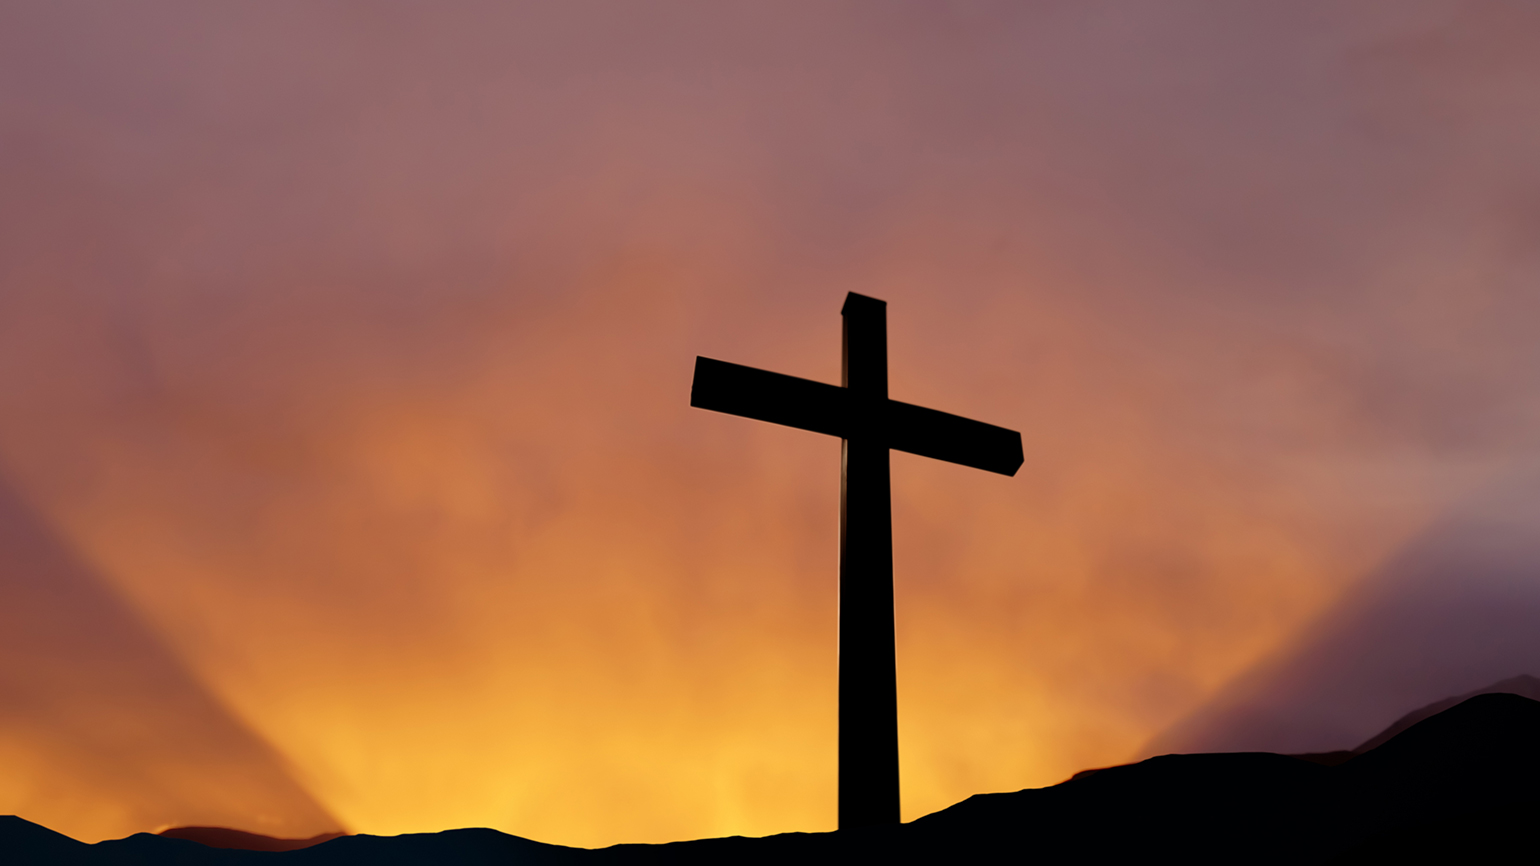 The empty cross stands tall in the face of the sunrise